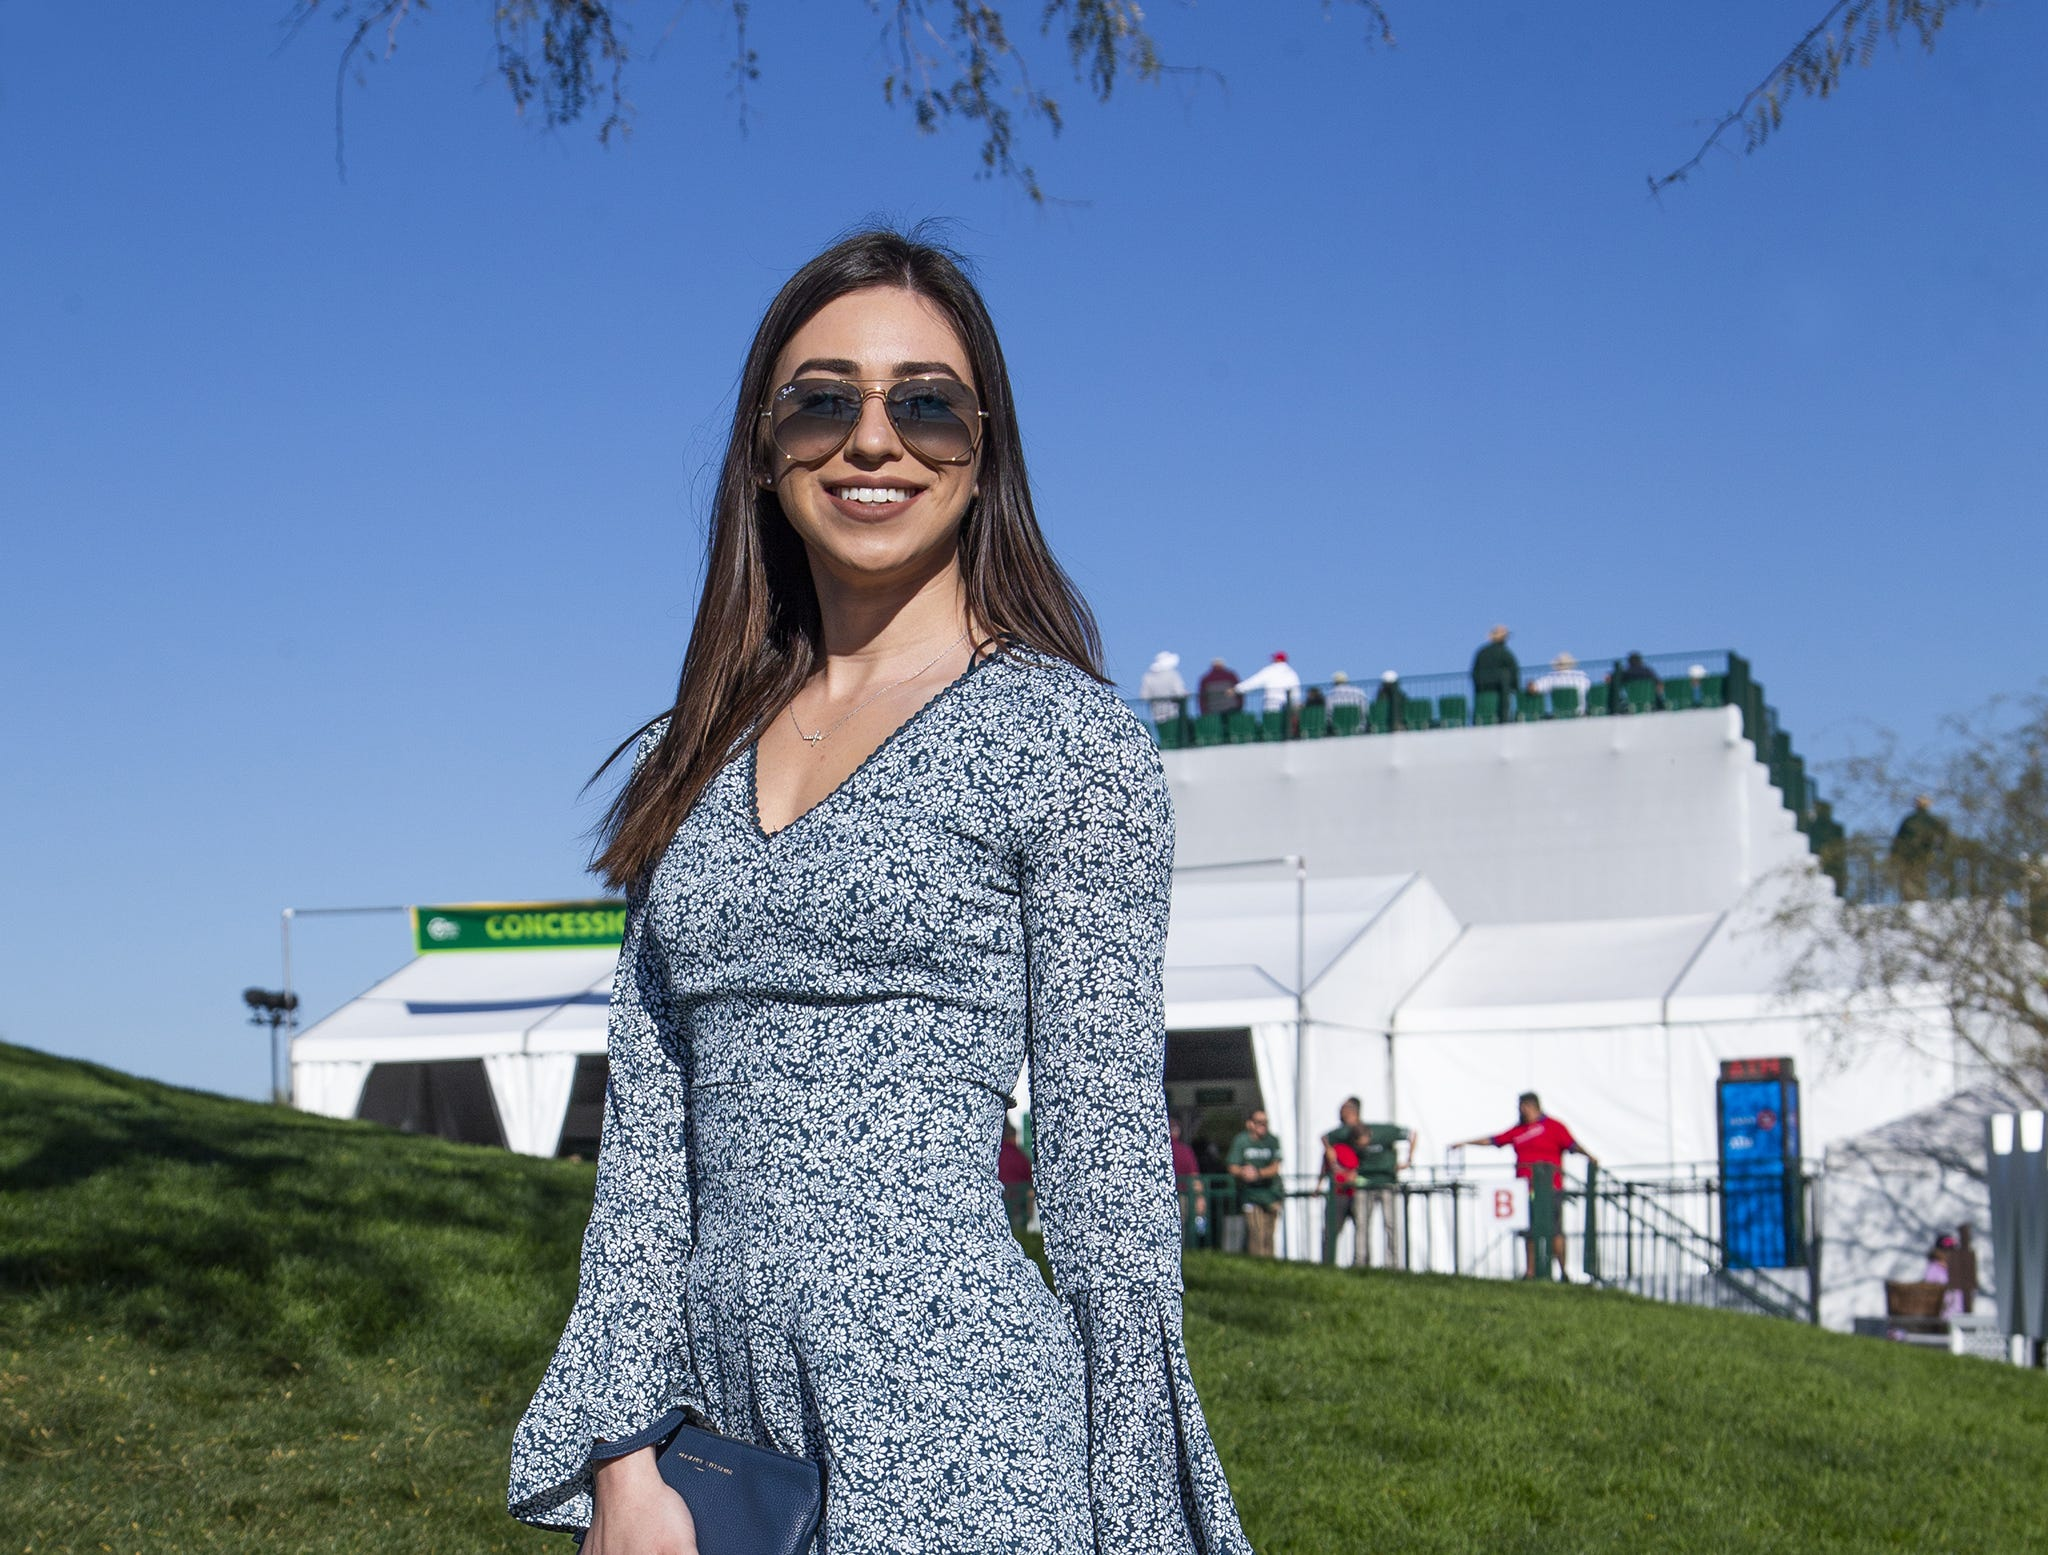 Katrina Cross, 23, Scottsdale, dressed up for the second round of the Waste Management Phoenix Open at the TPC Scottsdale, Friday, February 1, 2019.